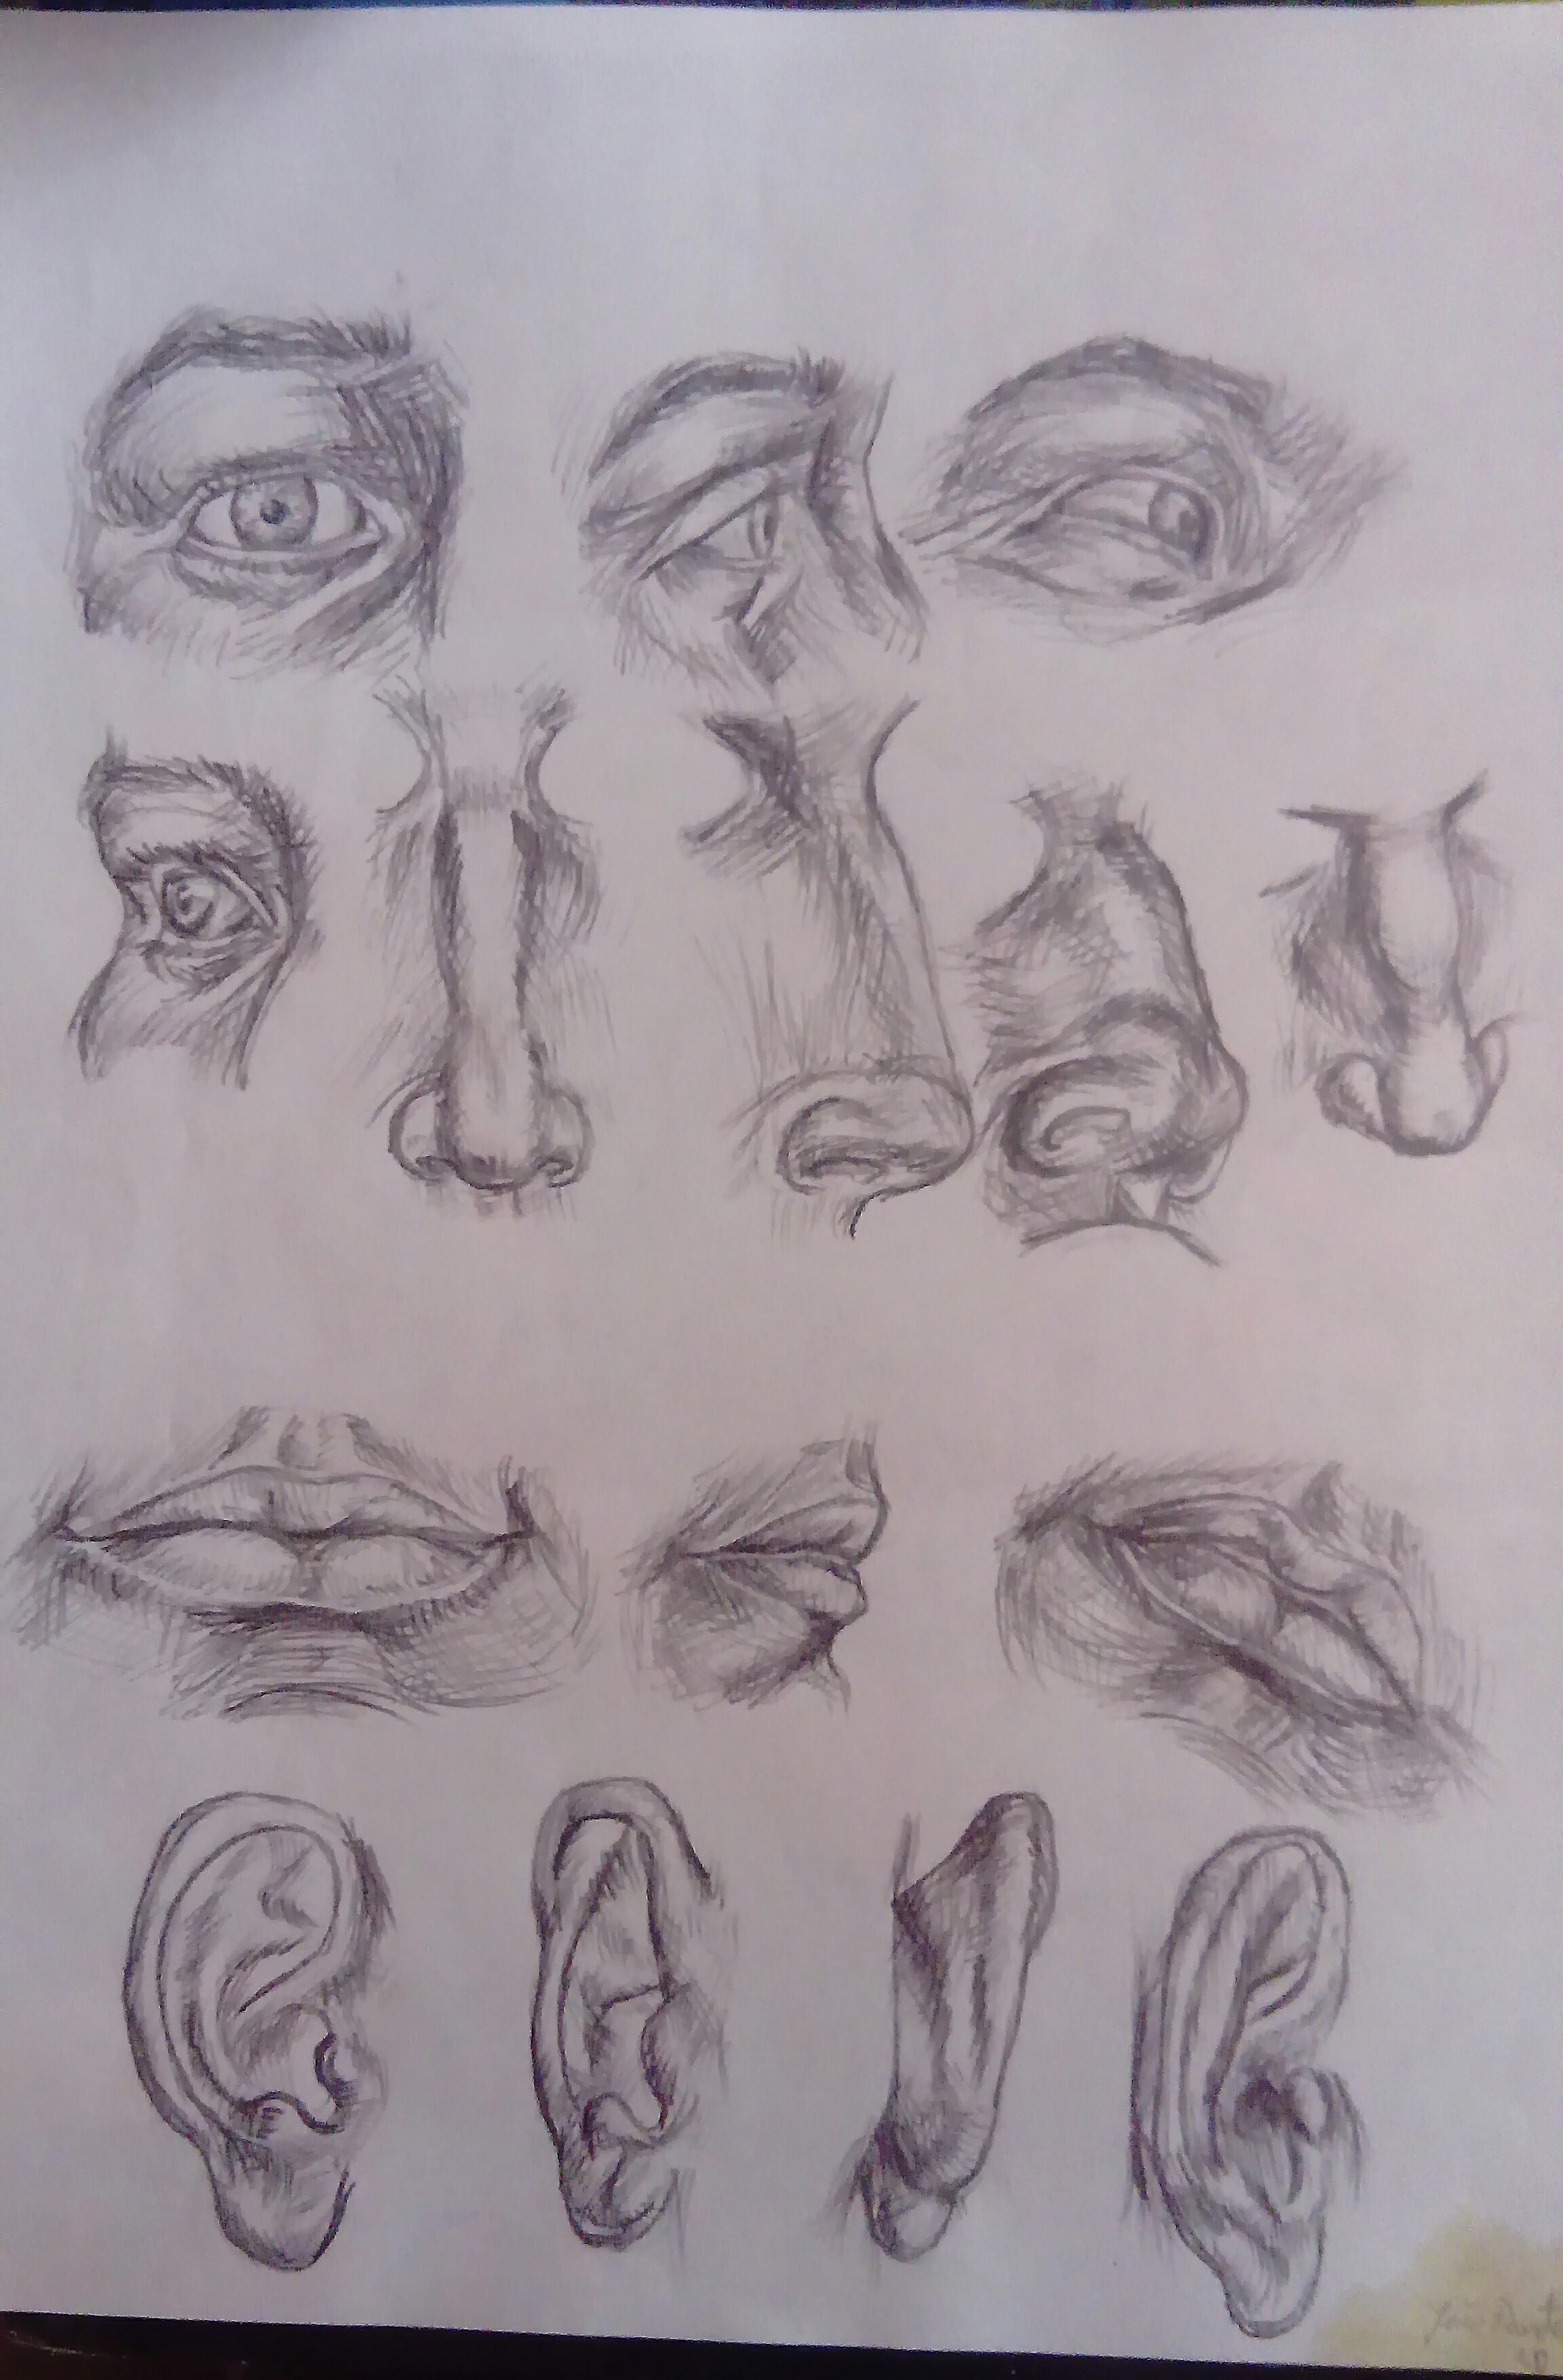 A study of face features